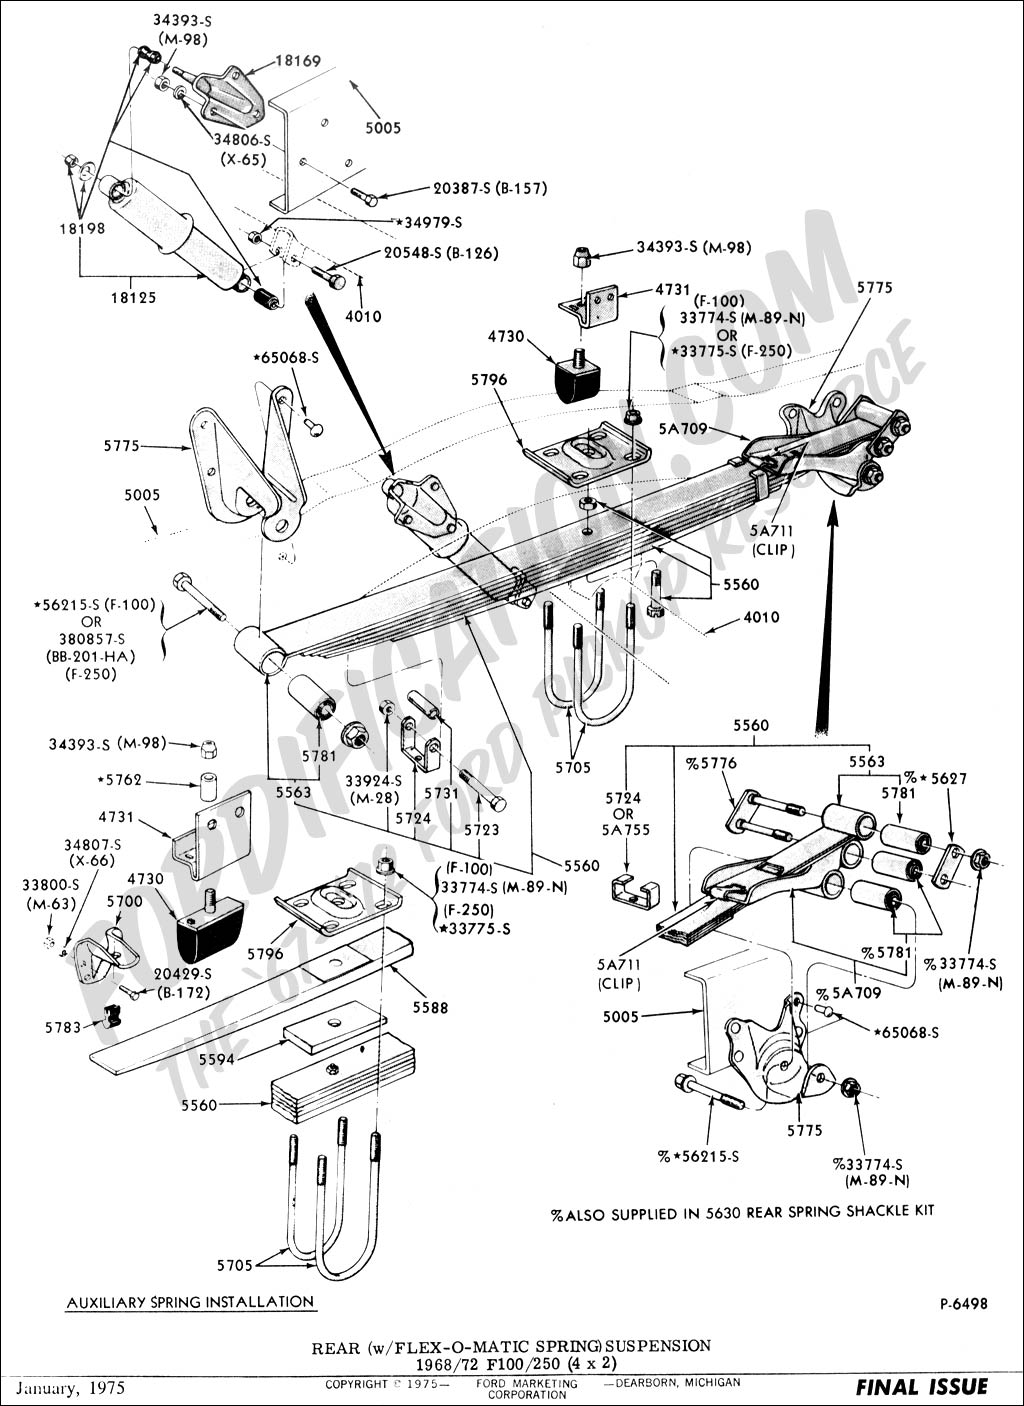 Ford F250 Wiring Diagram Online also 2003 Ford F250 Wiring Diagram further 1988 Ford F 350 Ignition Switch Wiring Diagram further Stihl Br 600 Parts Diagram 3c400fec97bfeb65 furthermore Ford E Fuse Box Diagram Schematic Wiring Diagrams Pick Up F Trusted Super Duty Detailed Schematics All Fuses Enthusiast Explained Steering Column Data Parts With Description. on 1988 ford f 250